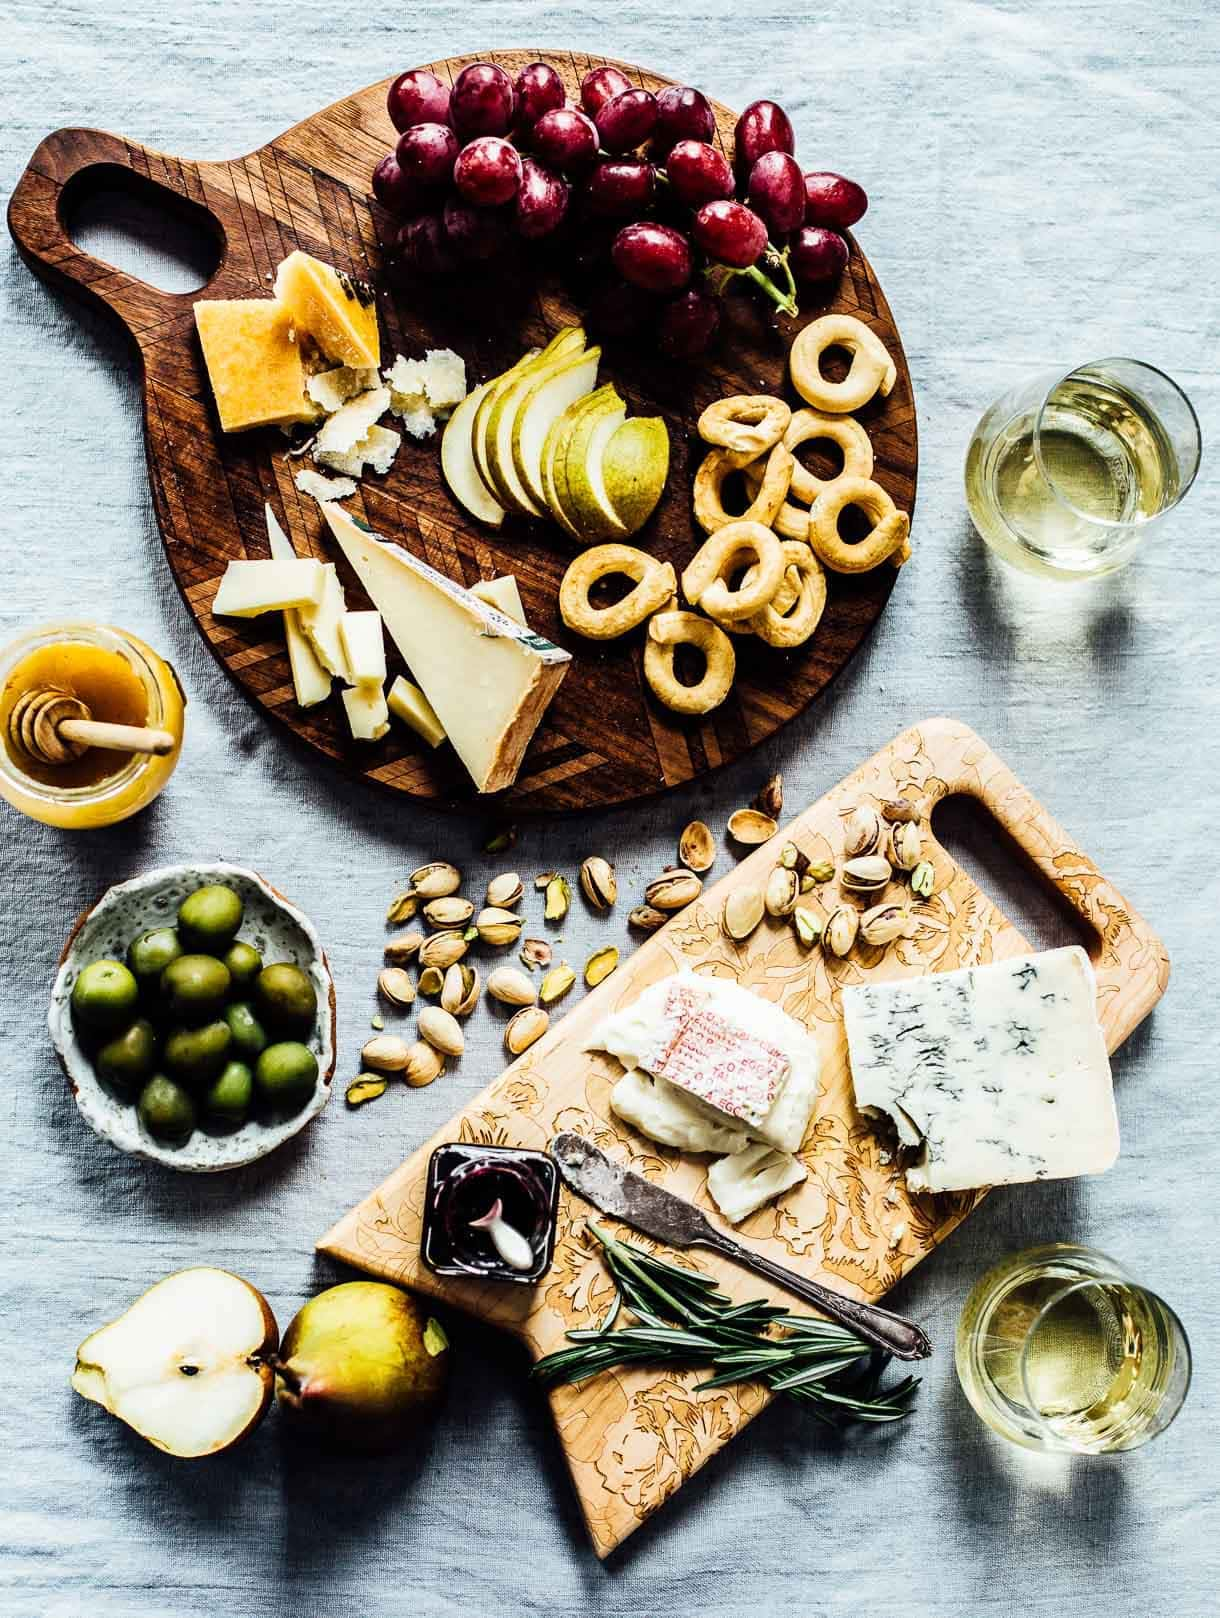 How to Make an Italian Cheese Board, with wine pairings